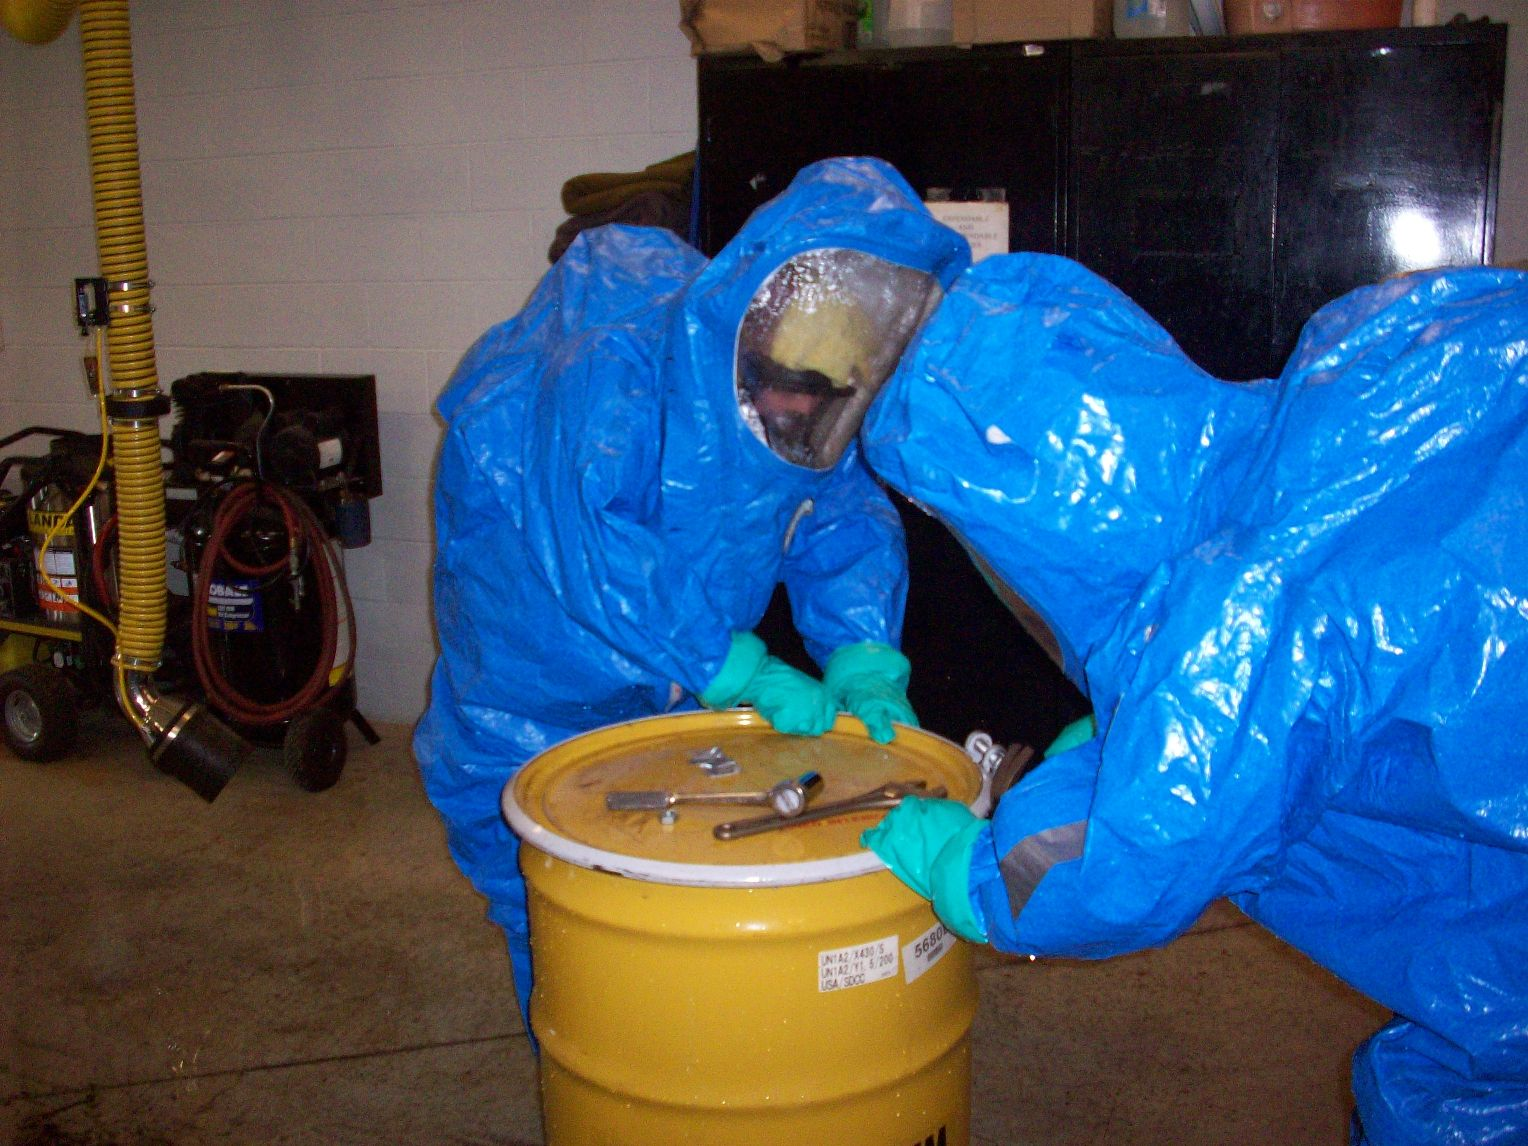 Men in Blue Hazmat Suits Sealing Barrel